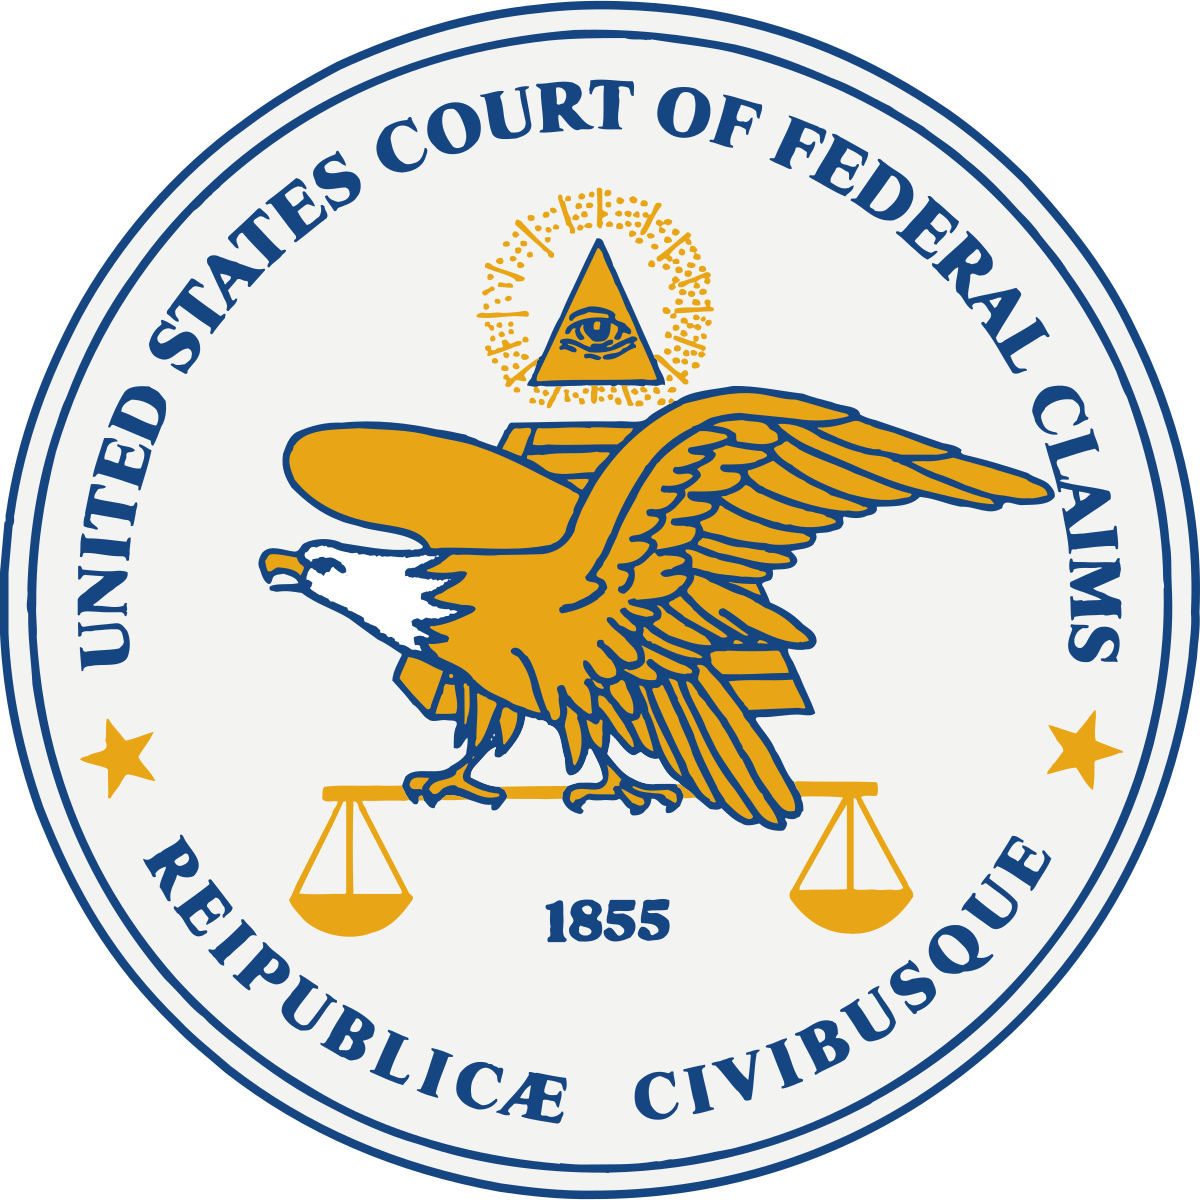 U.S. Court of Federal Claims